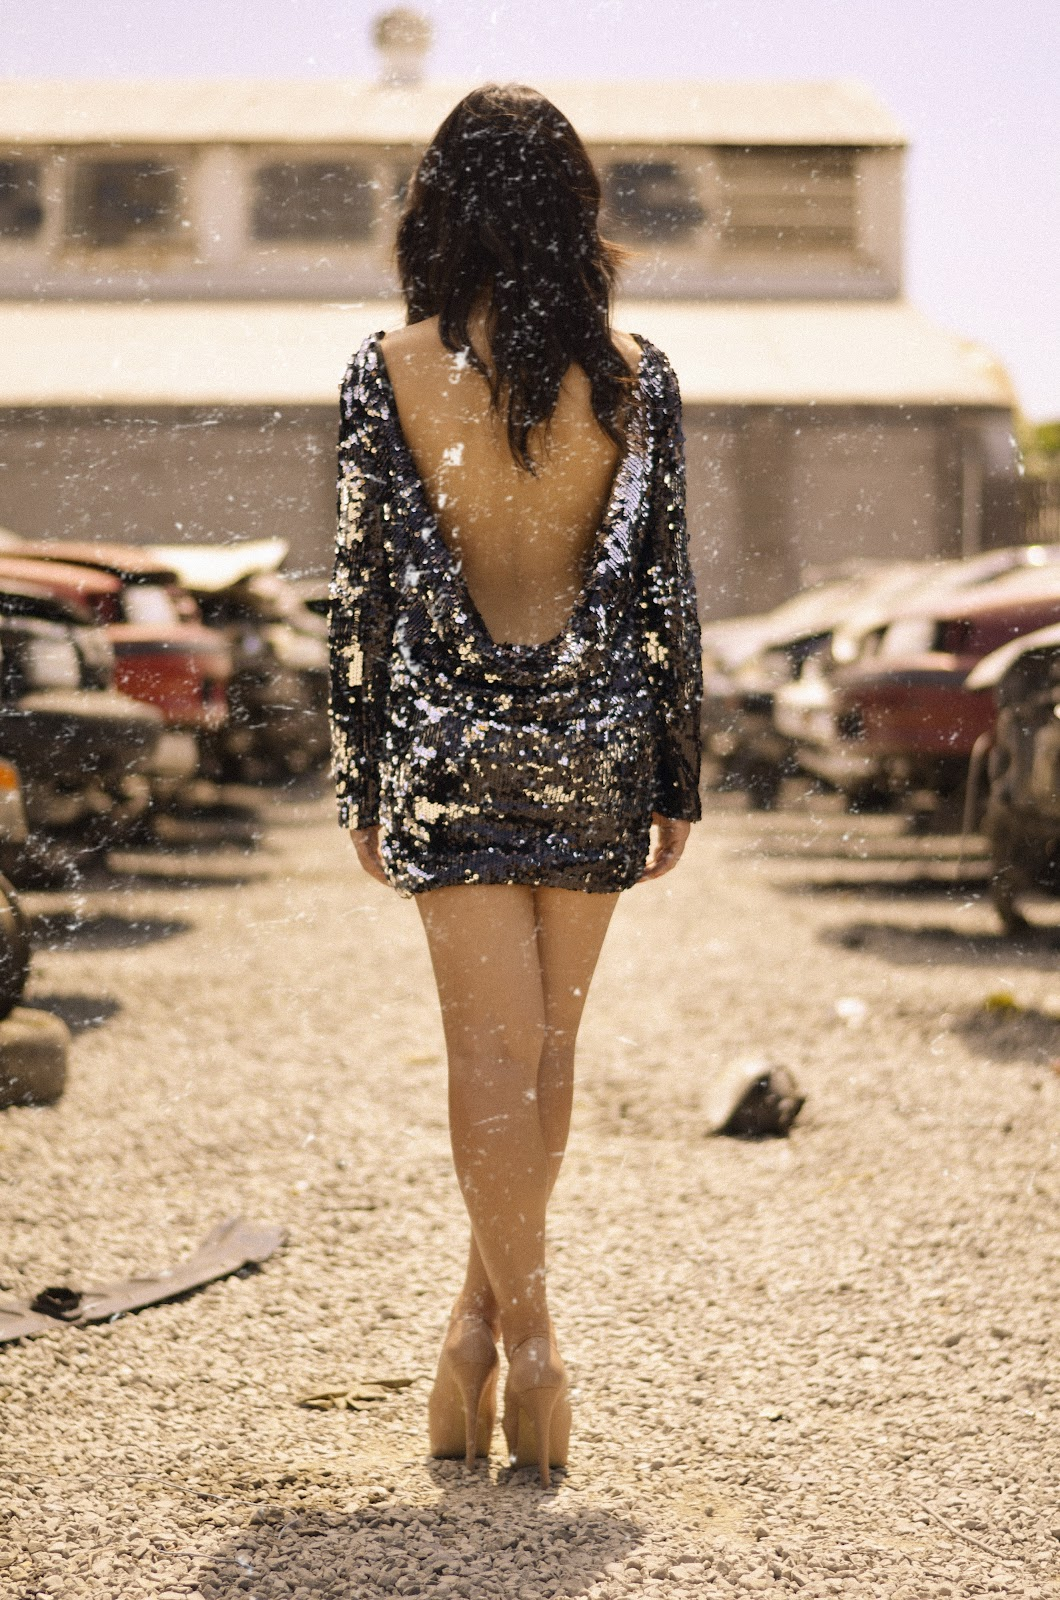 nasty gal, nasty gal sequin dress, nasty gal cruel mirage dress, nasty gal cruel mirage sequin dress, nasty gal drape back dress, nasty gal cruel mirage drape back sequin dress, steve madden nude heels, steve madden dejavu